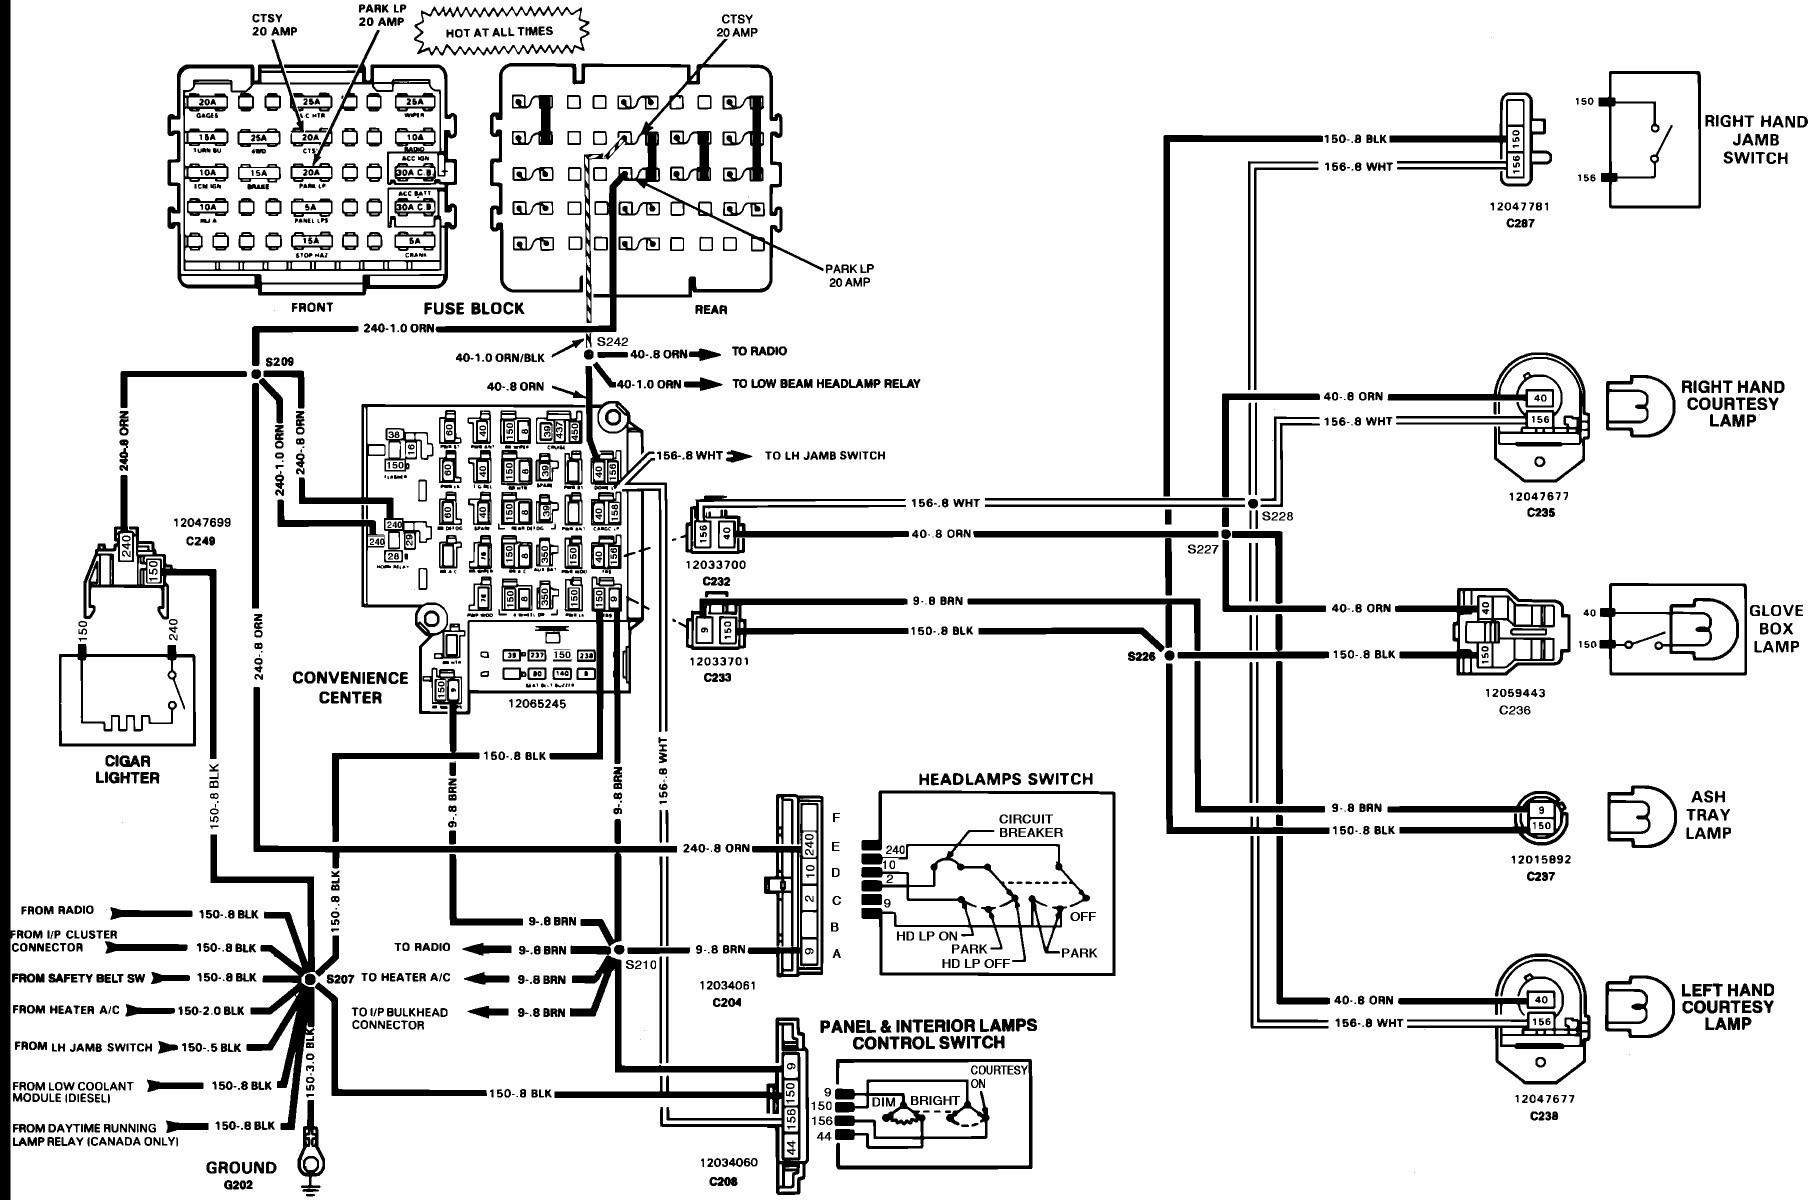 residential automatic transfer switch wiring diagram wiring library88 98 chevy radio wiring diagram \u2022 wiring diagram for free